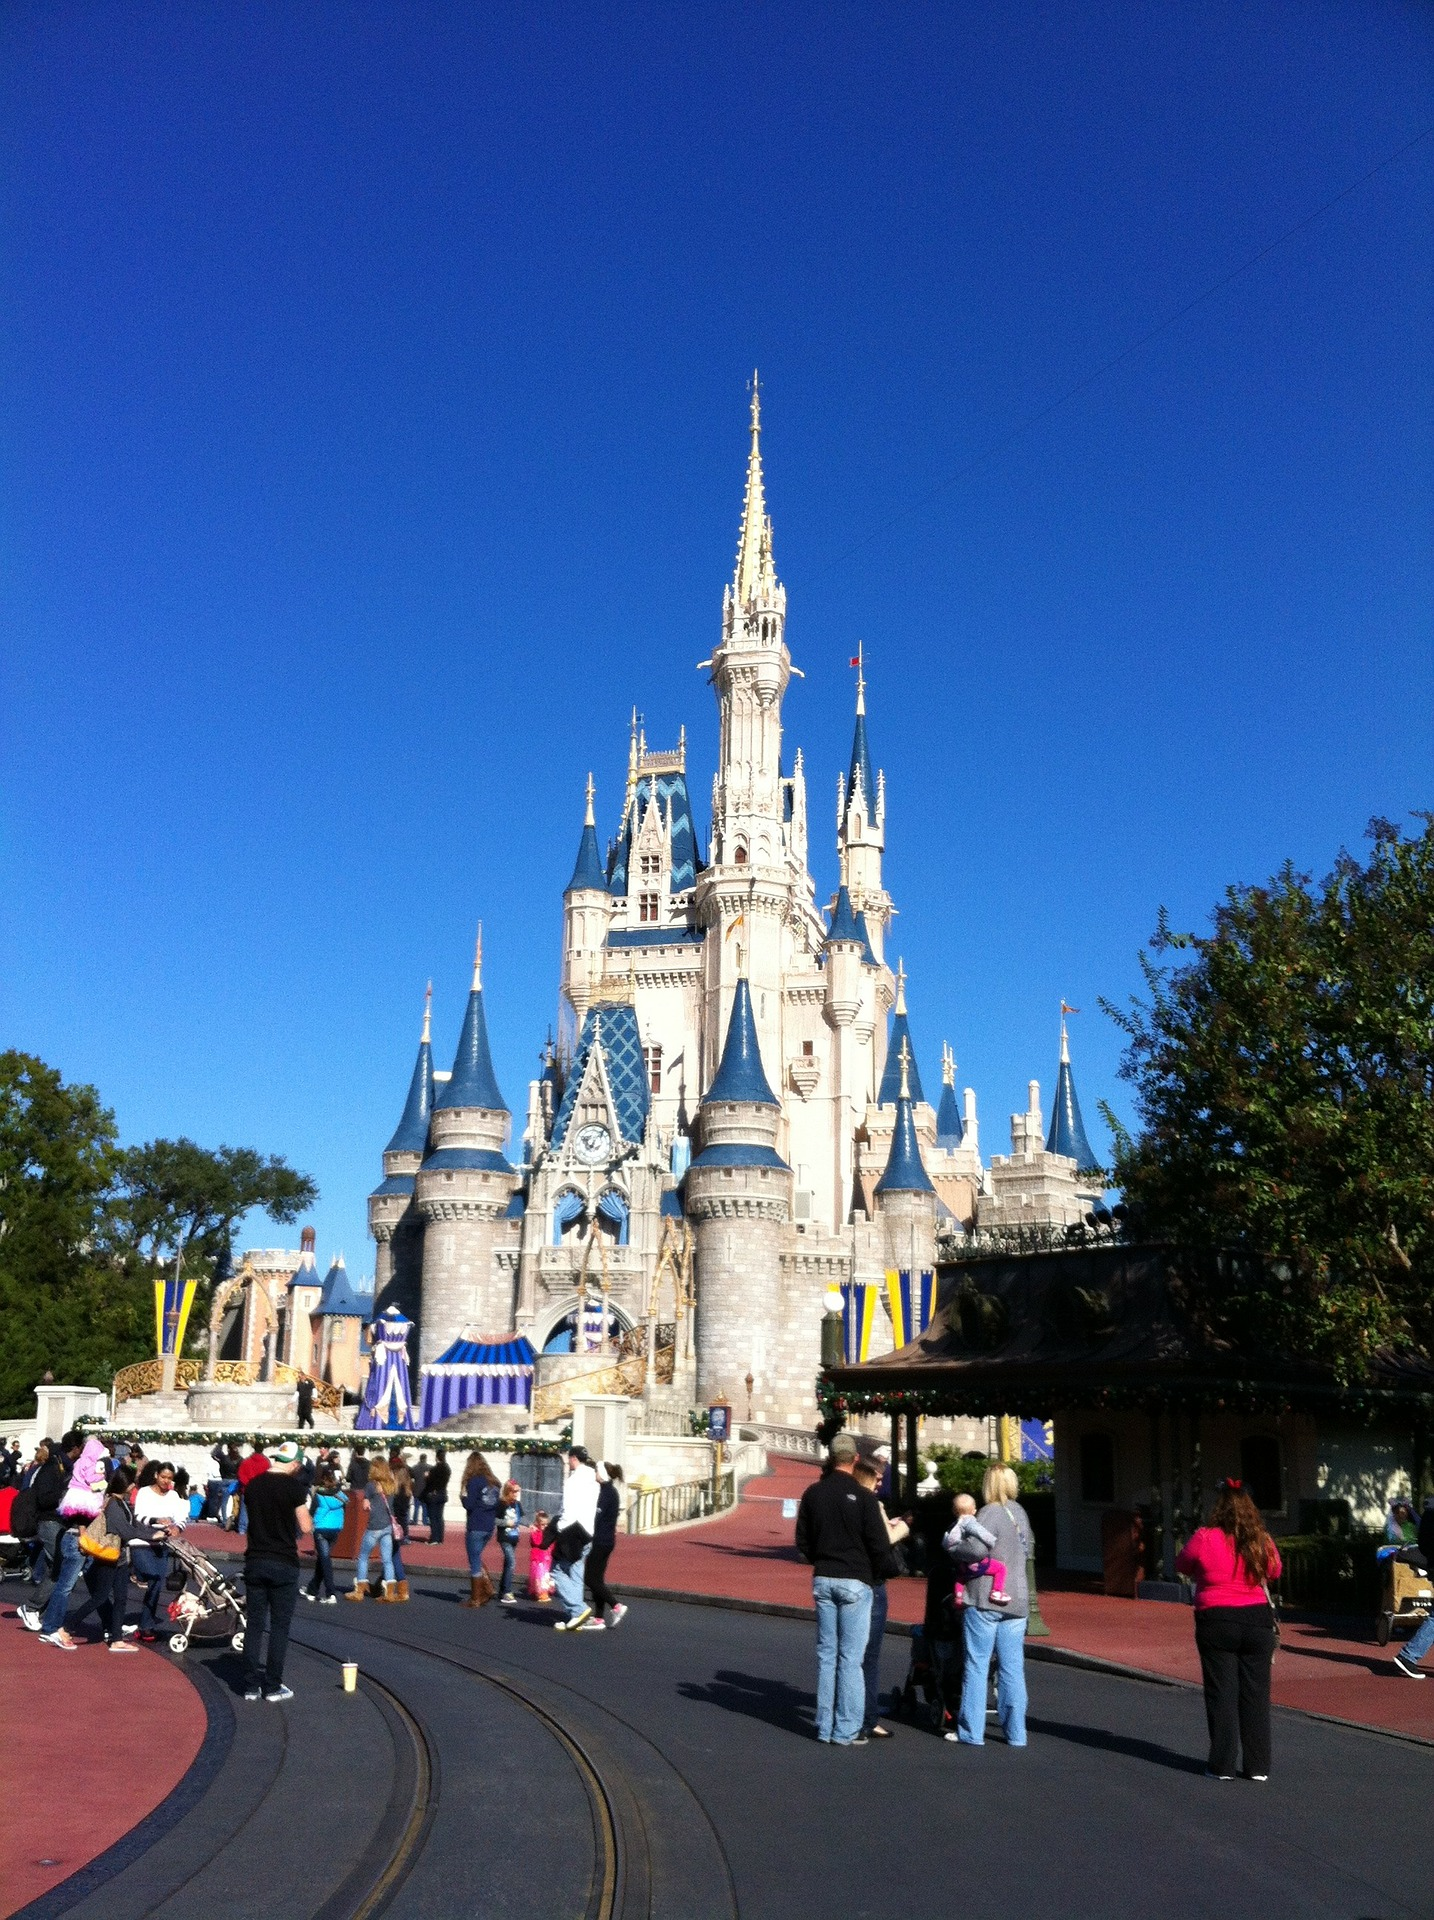 disney-world-226618_1920